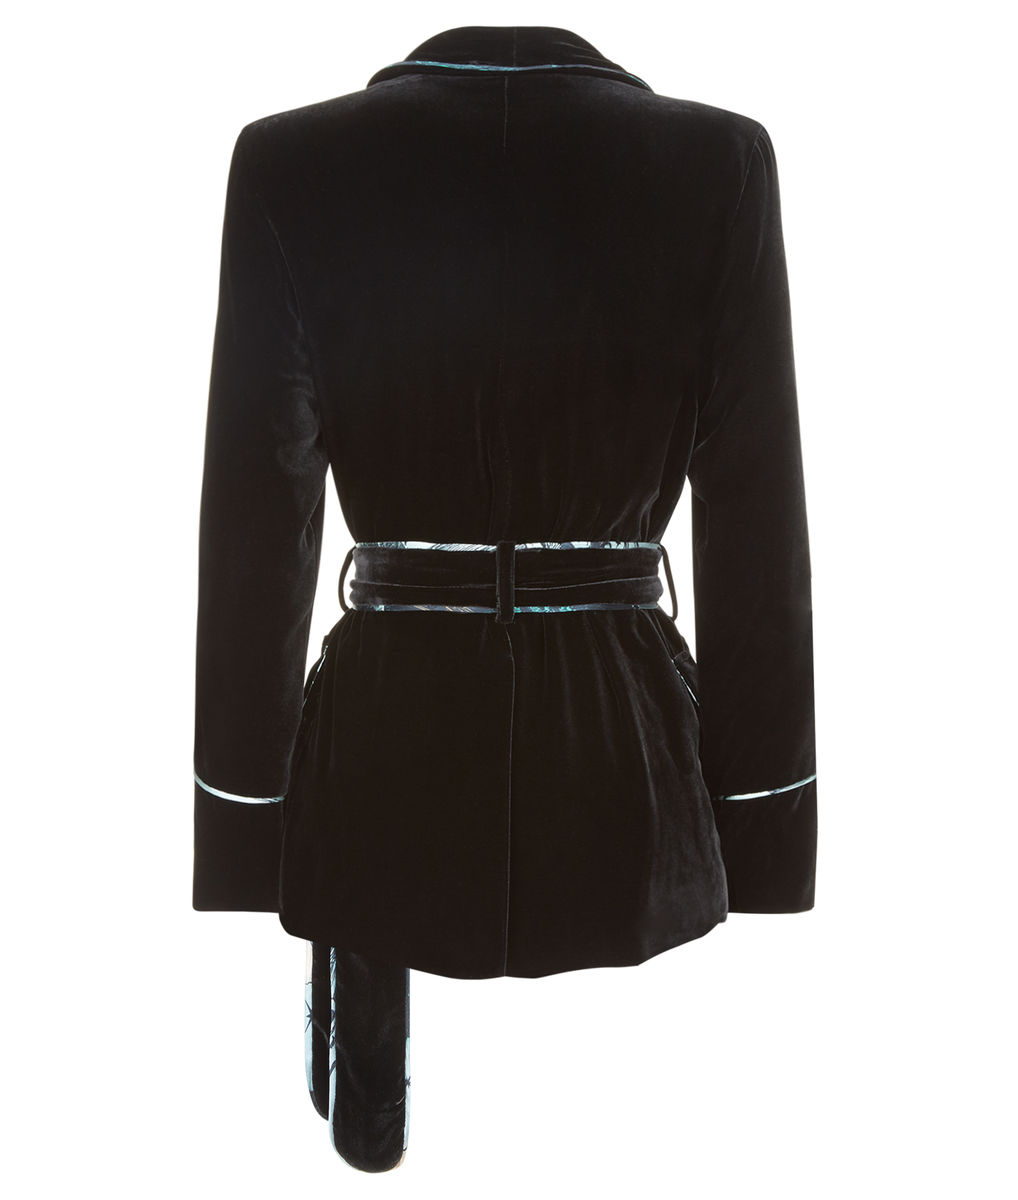 Carrie Velvet Smoking Jacket - product images  of